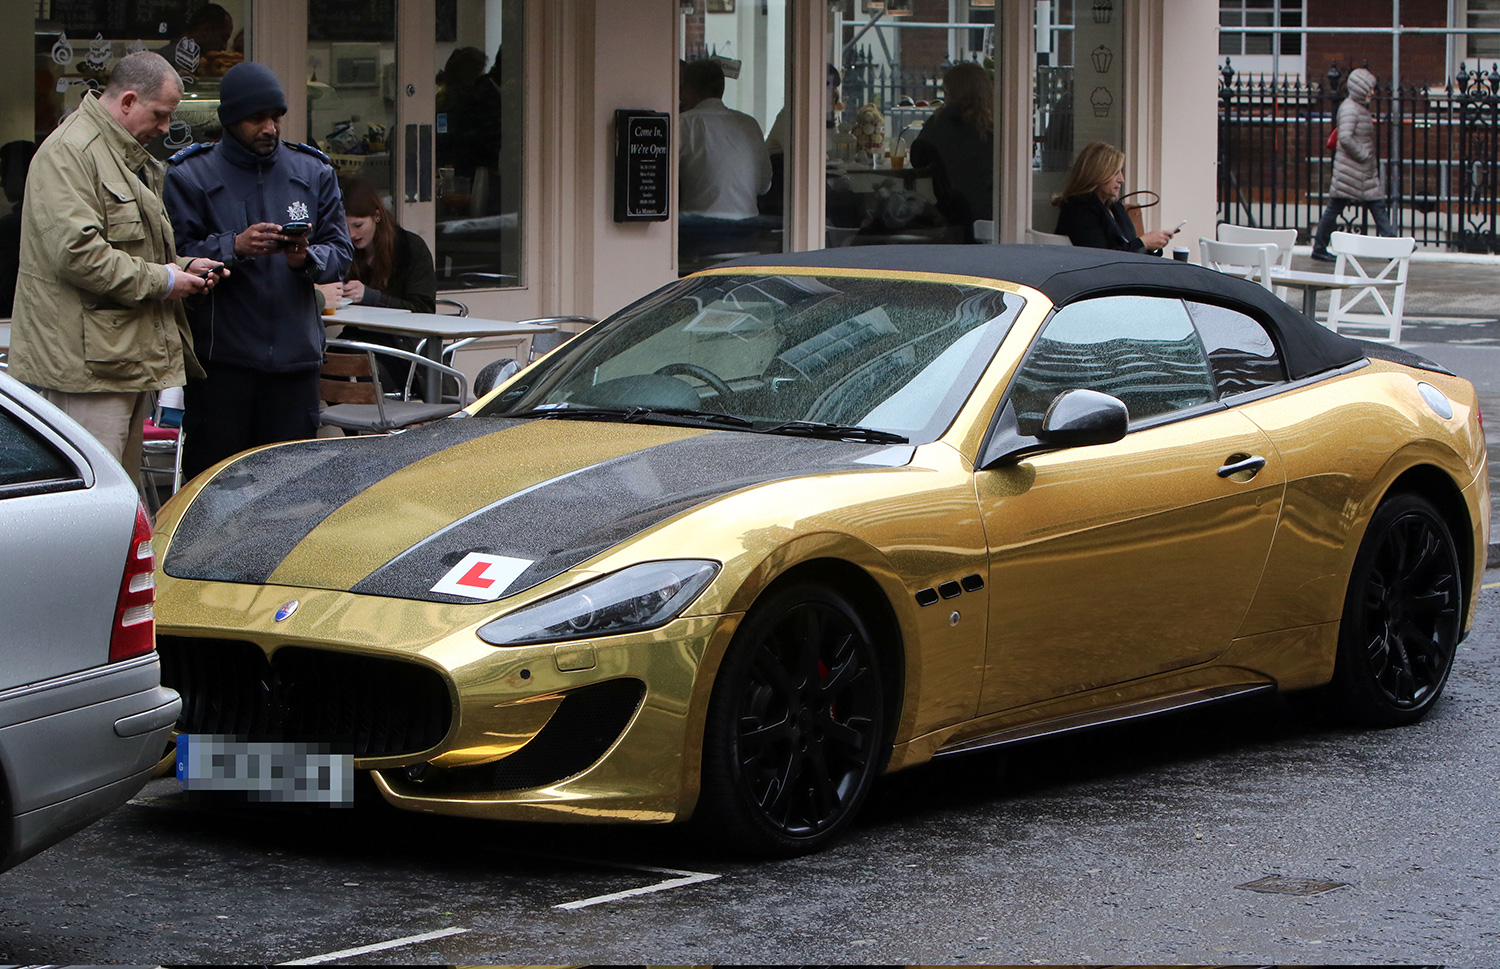 Arab drives £90k gold Maserati around London with L plates, awarded first ticket already : Luxurylaunches